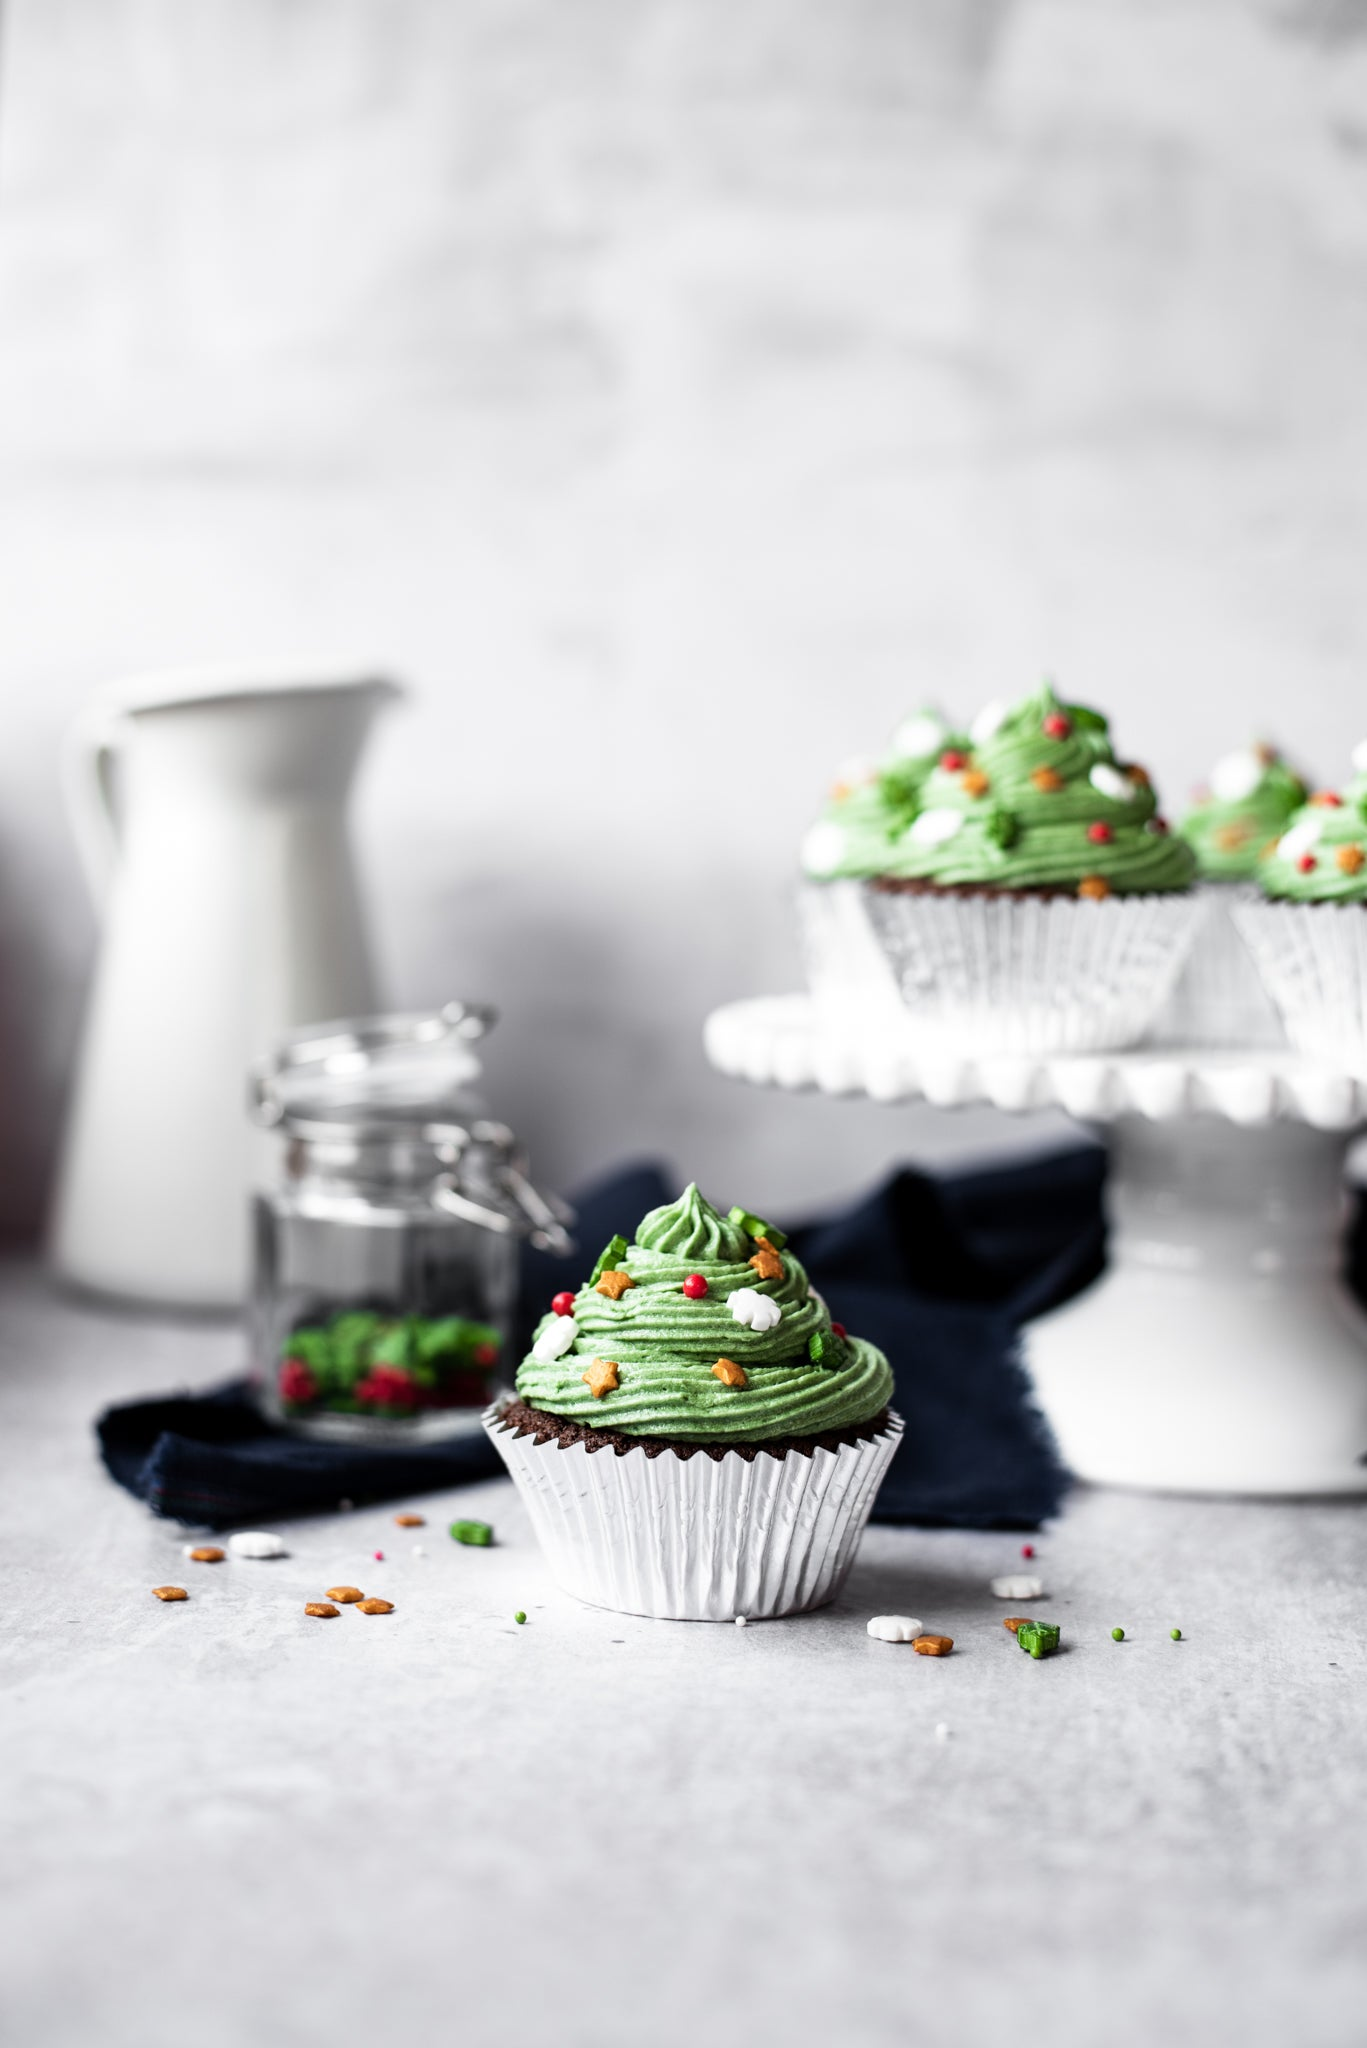 Christmas-Tree-Cupcakes-WEB-RES-2.jpg